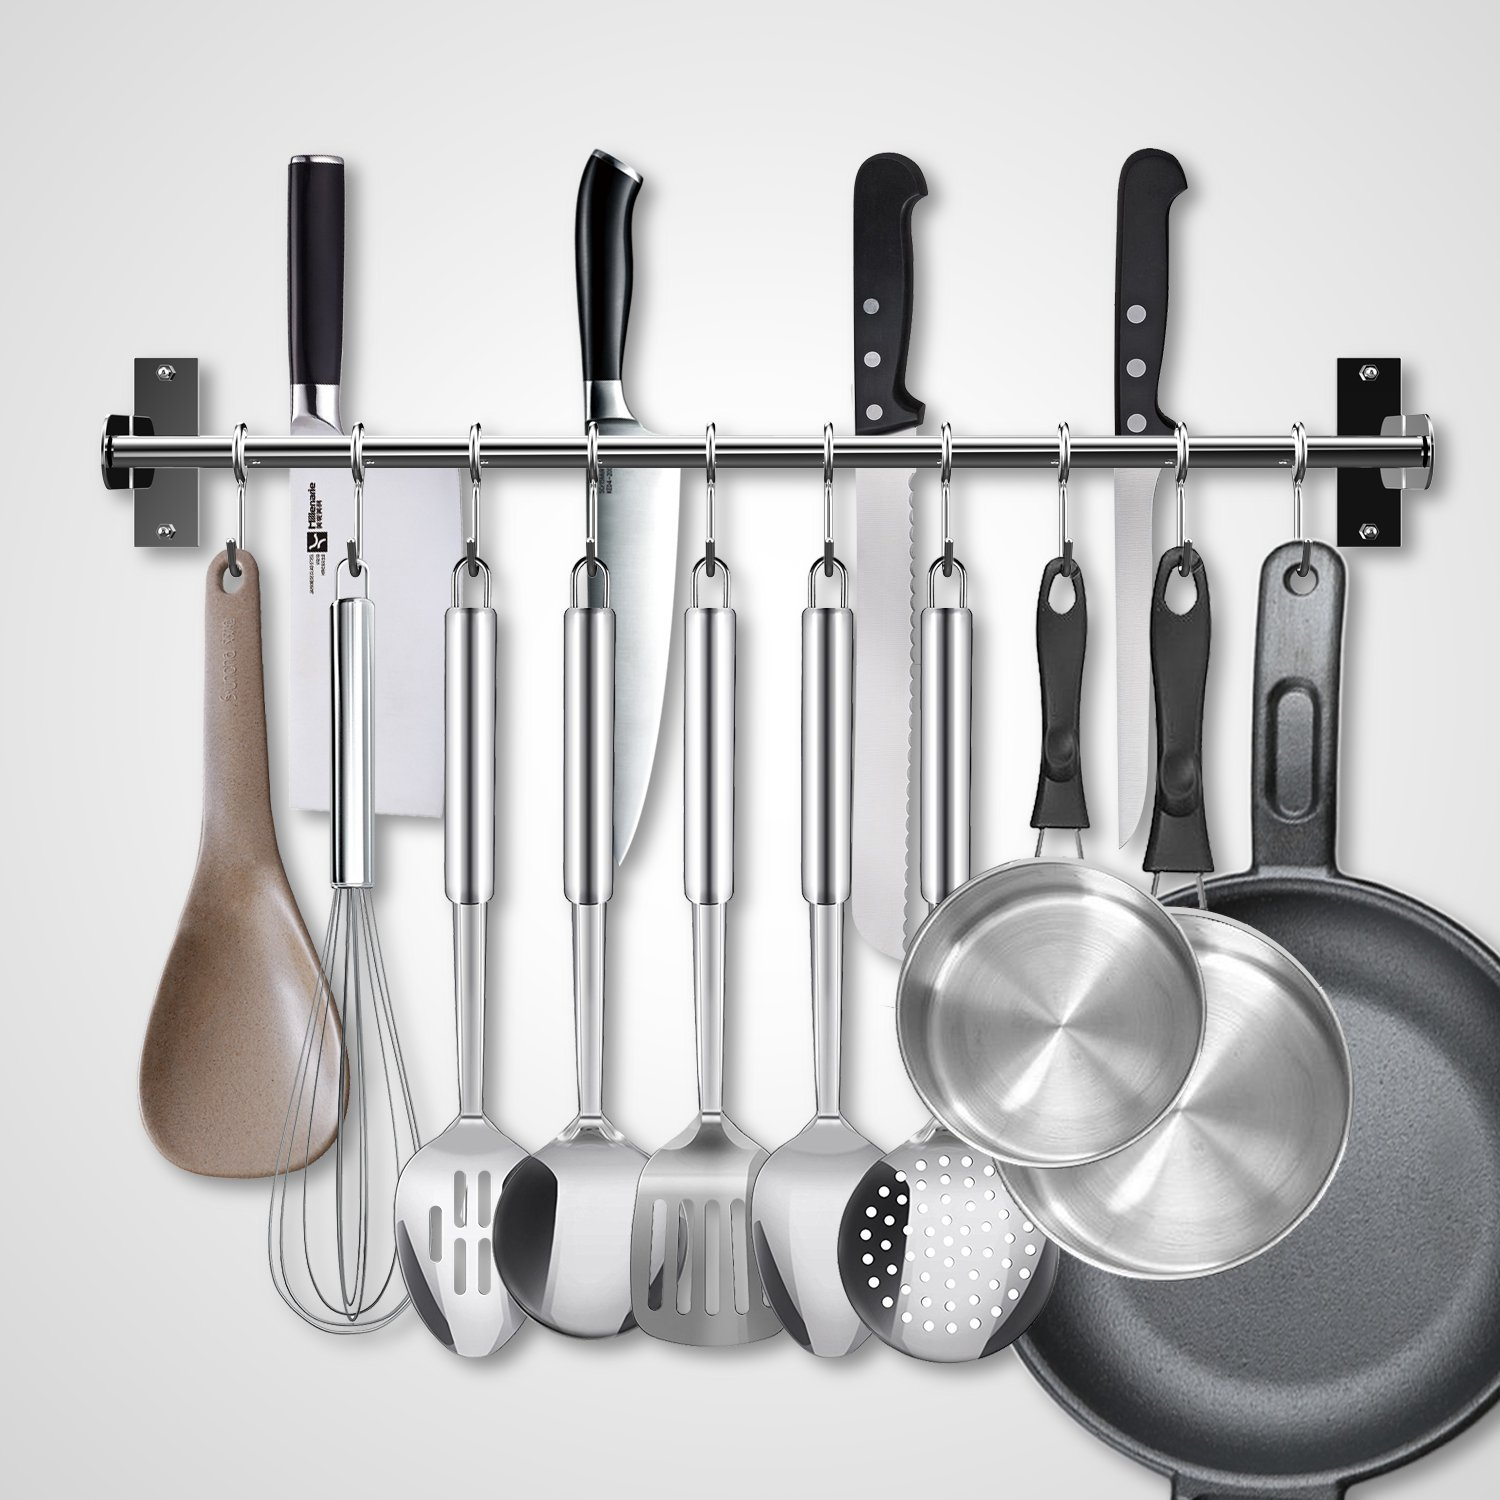 EINFAGOOD Kitchen Pot Rack, Kitchen Hooks Rack 10 Hooks with Knife Holder and Pot Lid Rack,Stainless Steel Double Pipe Loadable over 22 lb 23.62'' Long (Polished Finish)